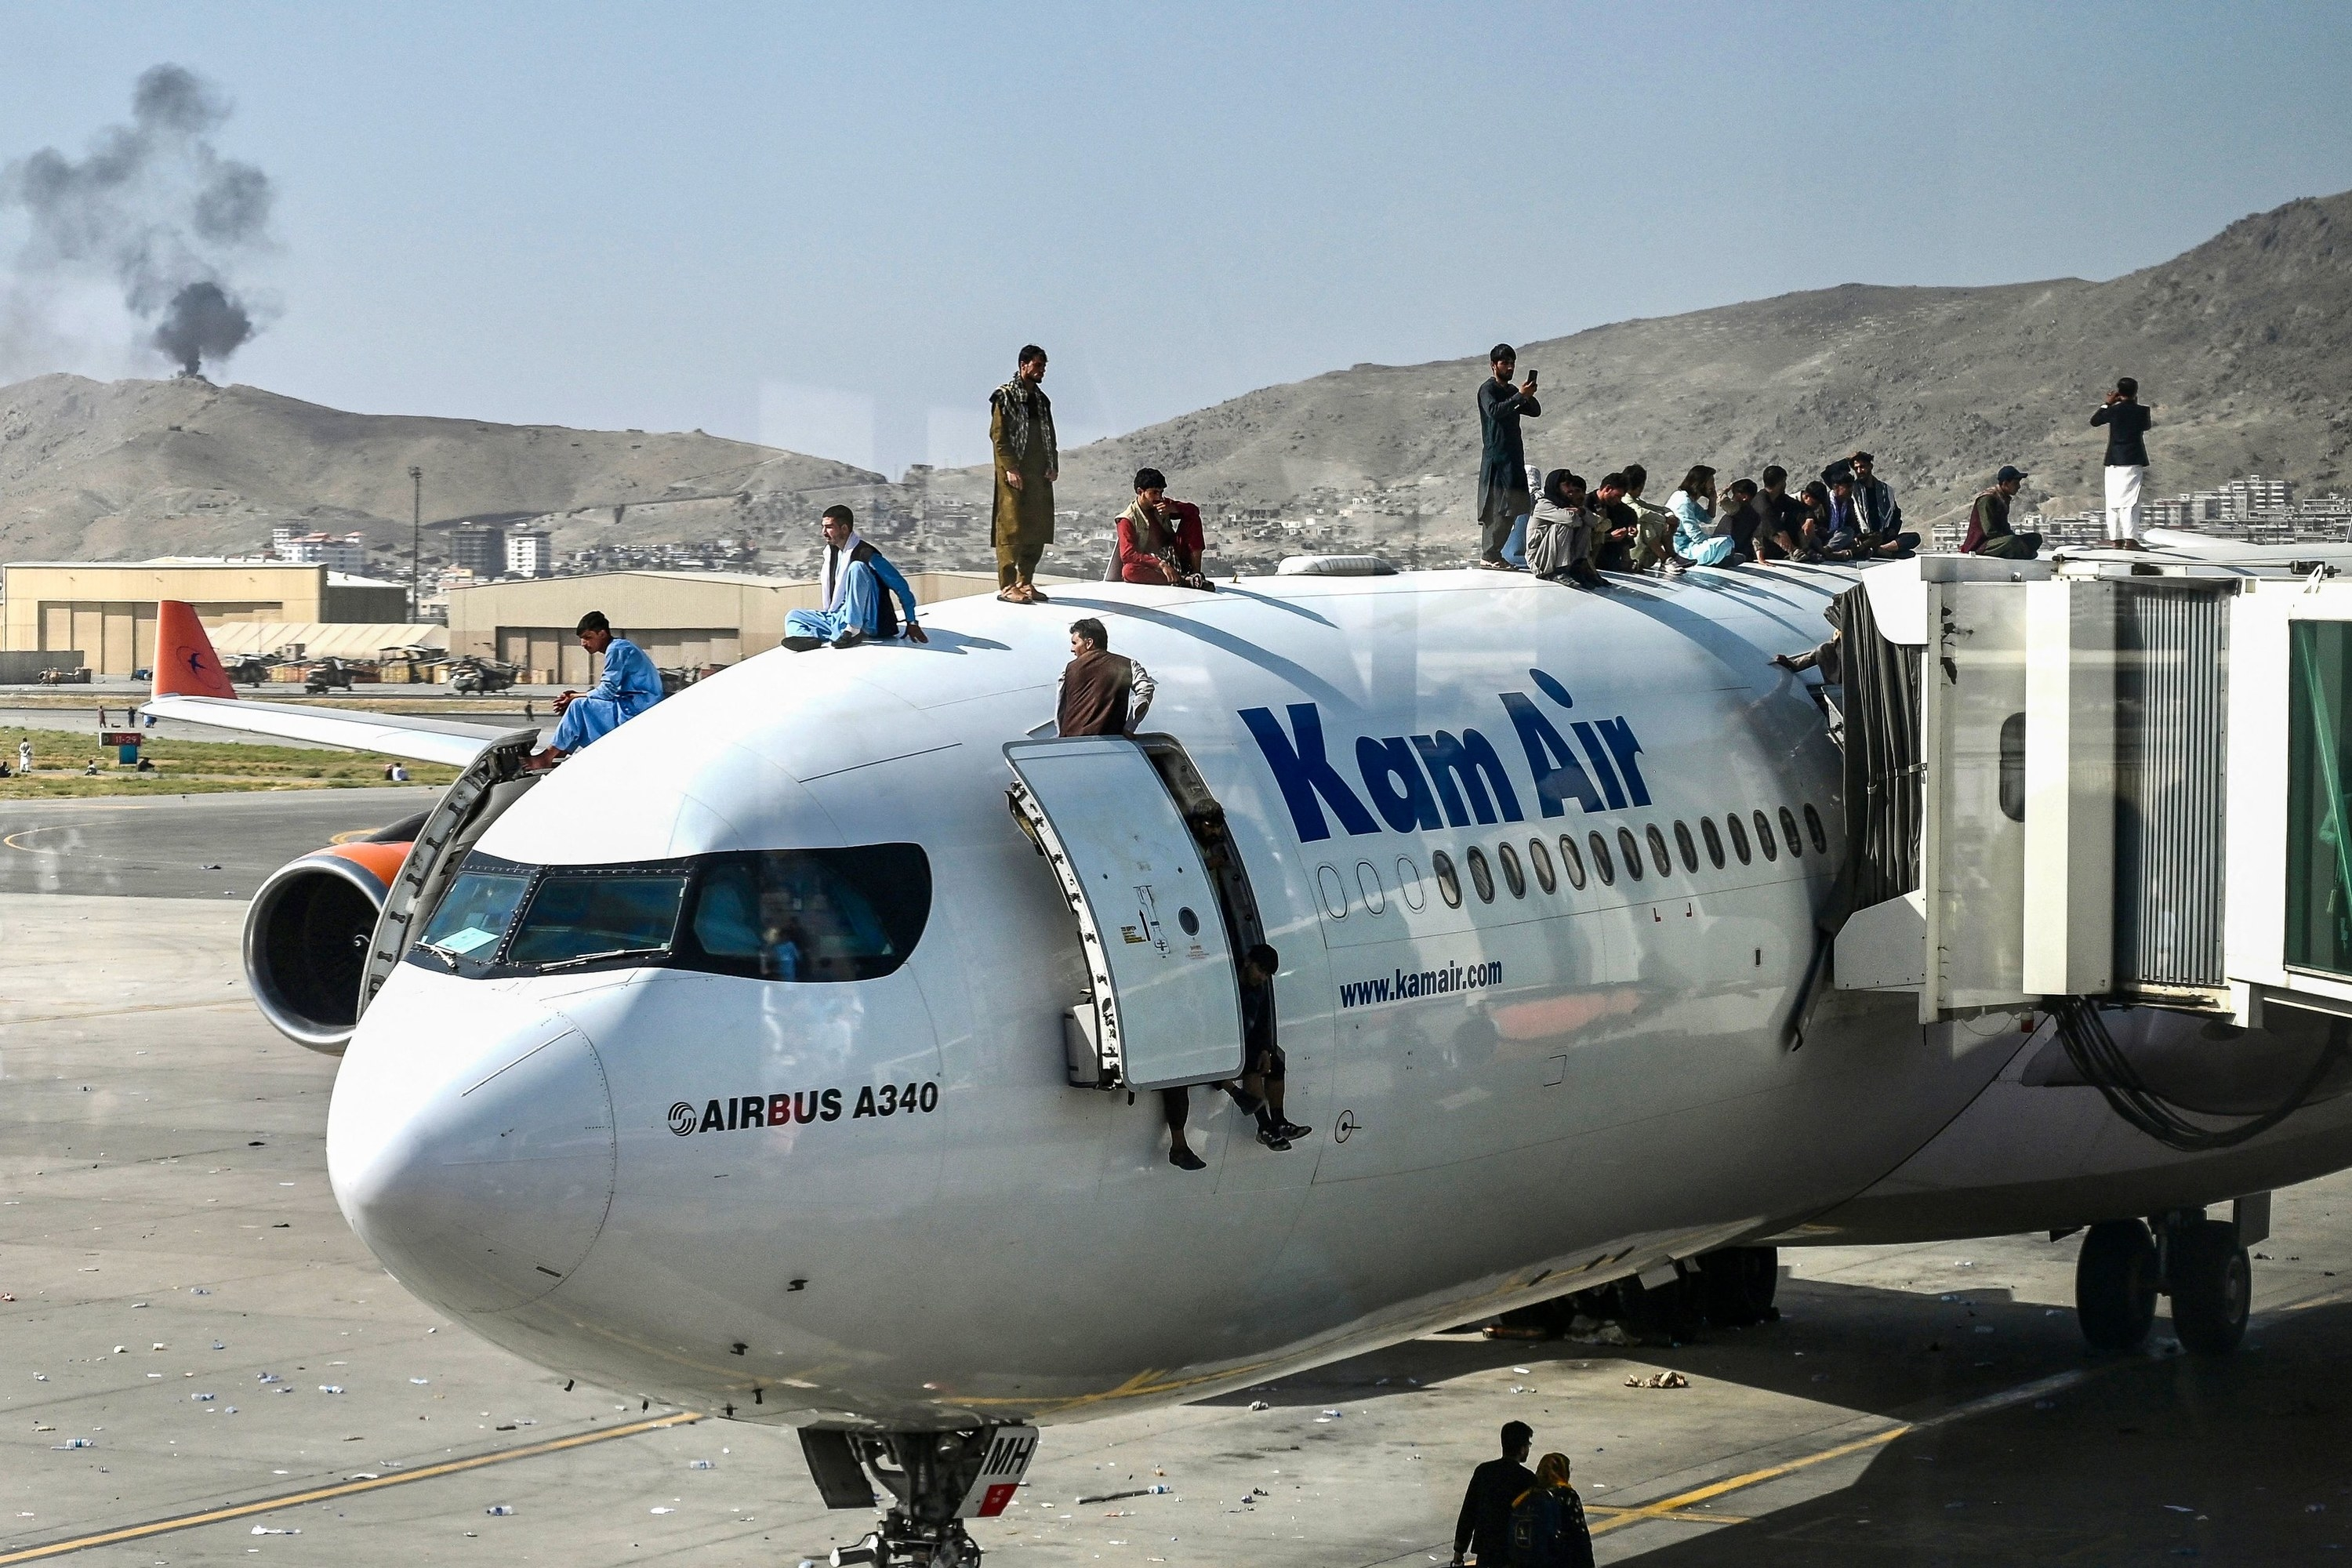 Afghan people climb atop a plane as they wait at the Kabul airport in an attempt to flee the Taliban's feared hardline brand of Islamist rule